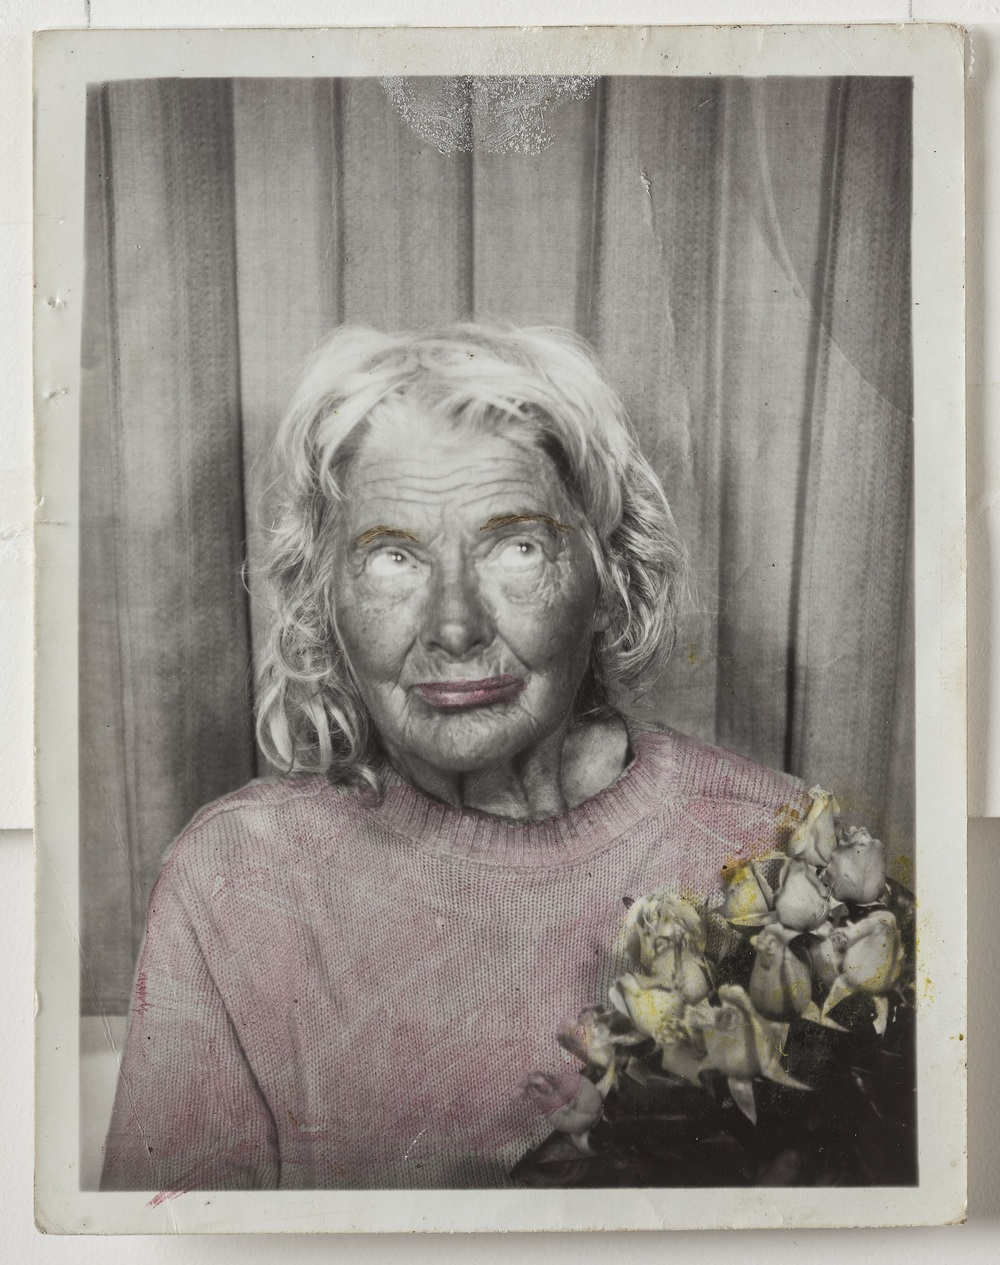 Lee Godie, Untitled (12 photobooth self-portraits, detail), n.d.; gelatin silver print; 12 1/2 x 61 x 2 1/2 in. Collection of Robert Parker and Orren Davis Jordan, NM.